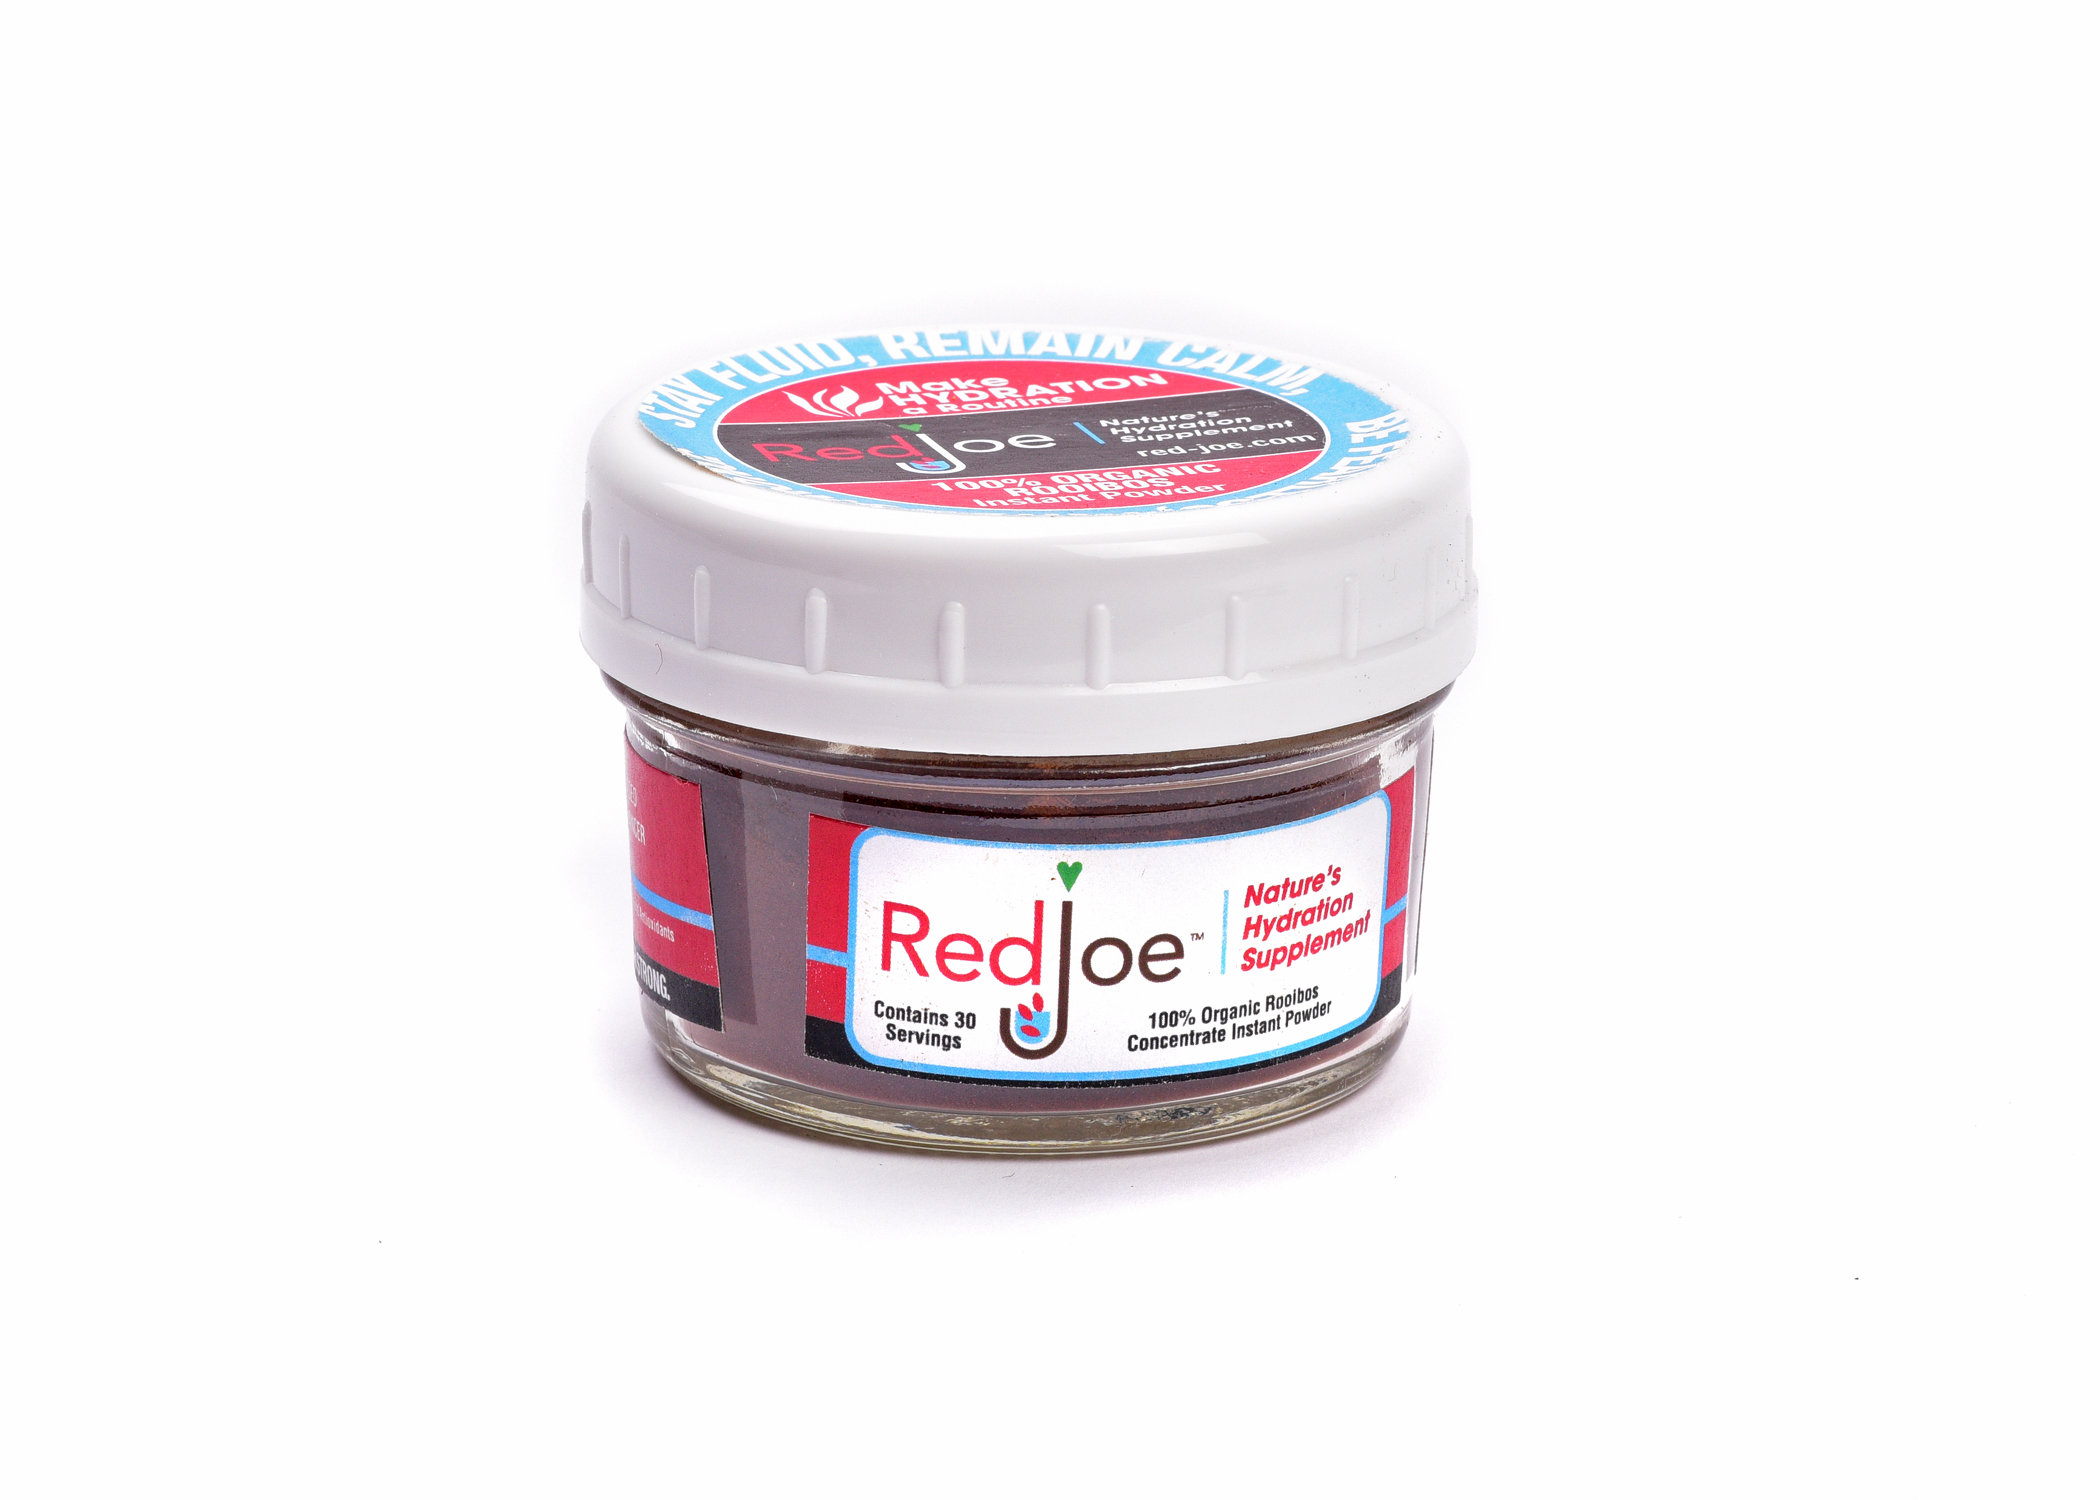 30 serving jar of Red Joe Powder 859096004047